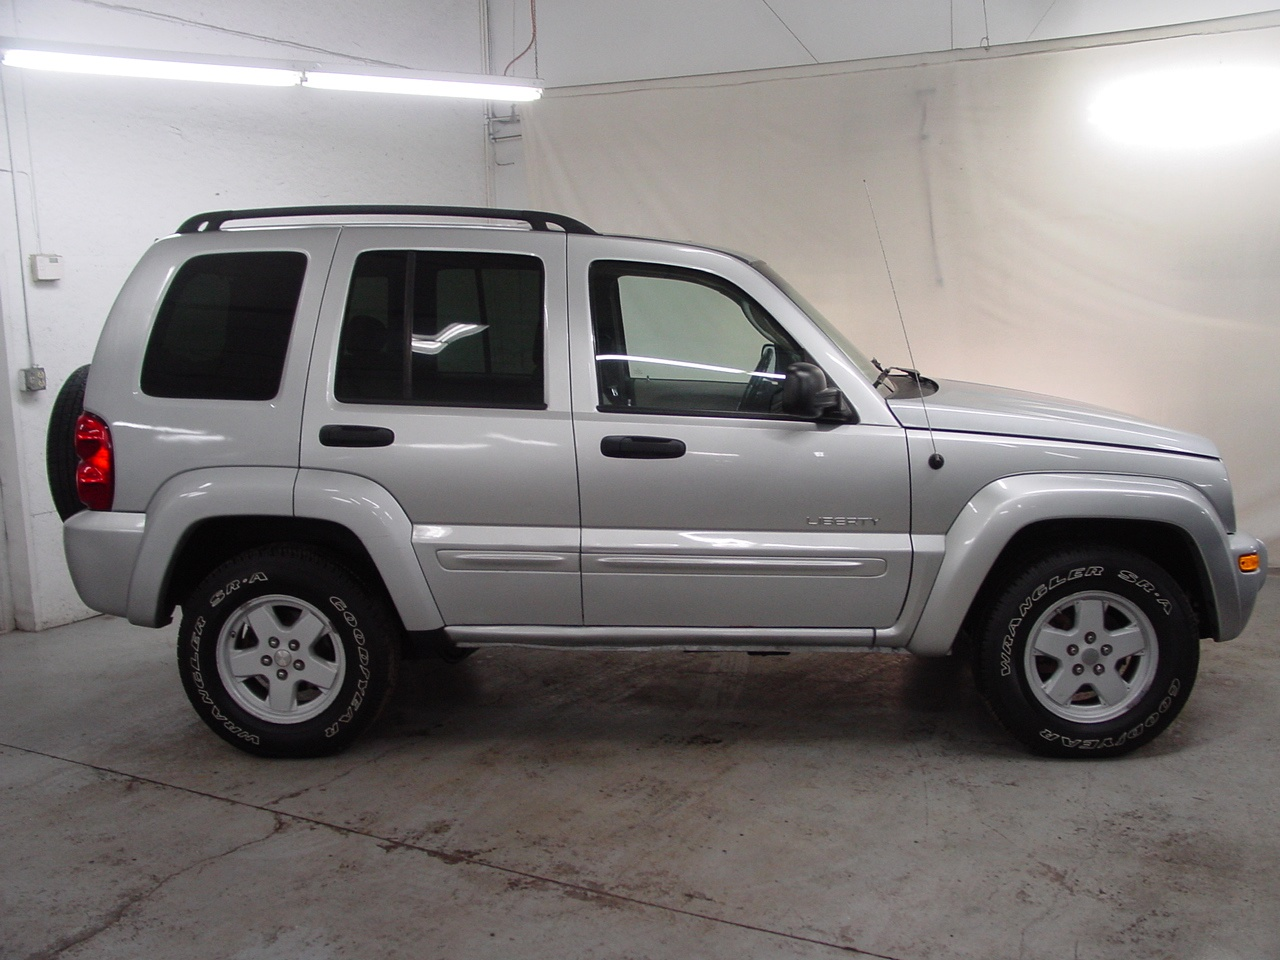 Liberty Auto Sales >> 2004 Jeep Liberty Limited - Biscayne Auto Sales | Pre-owned Dealership | Ontario, NY